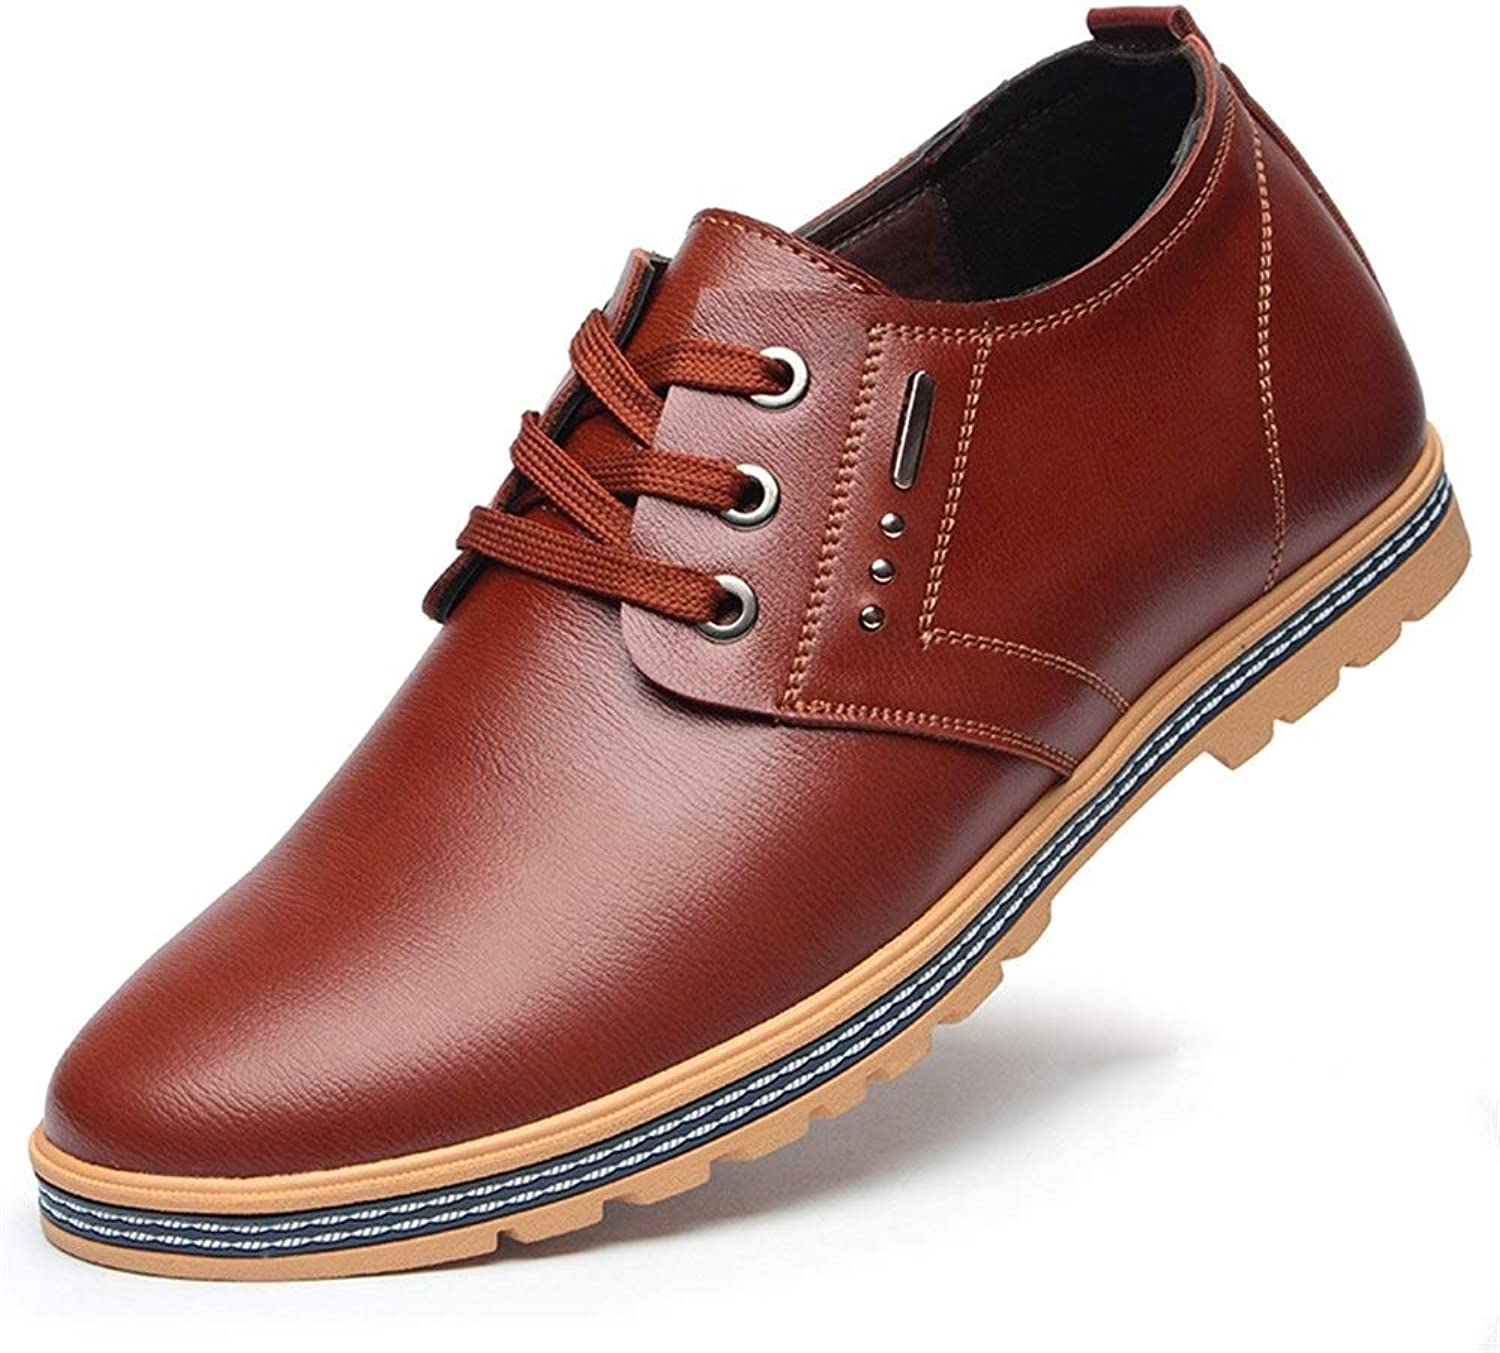 Ino Oxford shoes for Men Schematic shoes Lace Up Style Microfiber Leather Height Increasing Insole Causal Business